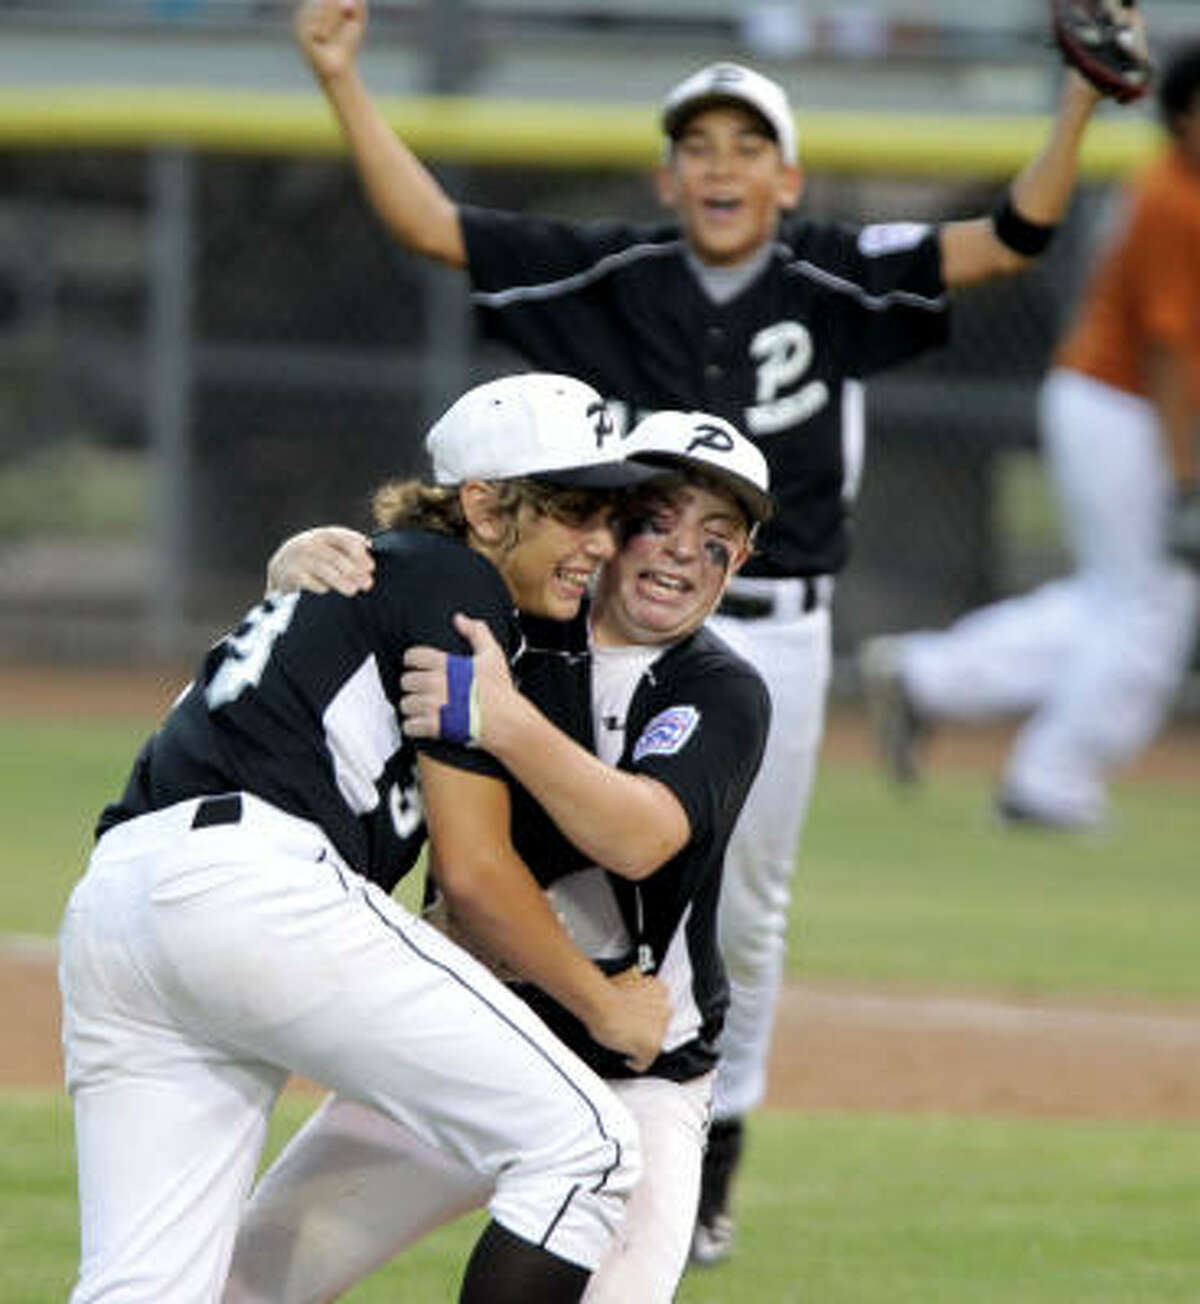 Pearland starting pitcher Beau Orlando, right, and reliever Mason Van Noort celebrate after the game's final out is recorded.